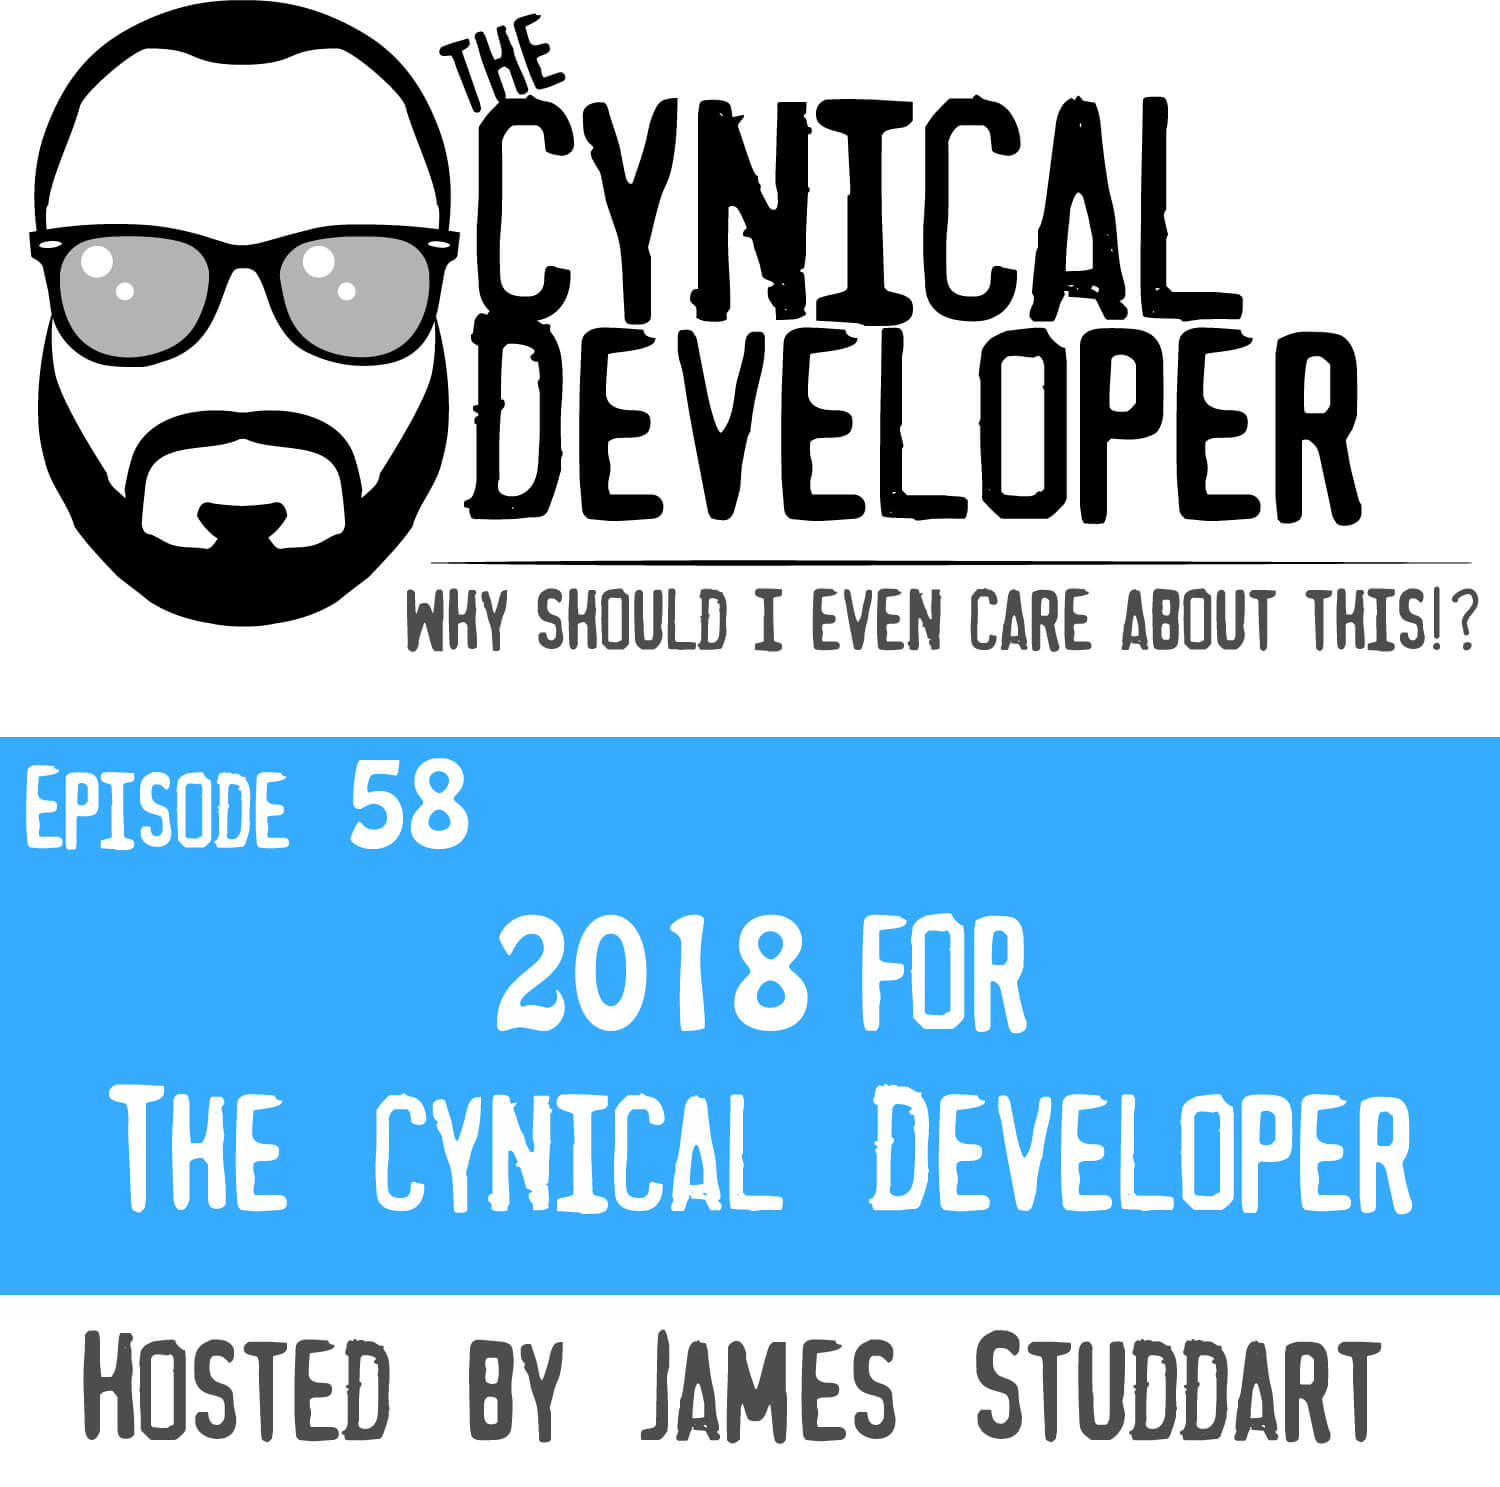 Episode 58 - 2018 for the Cyincal Developer